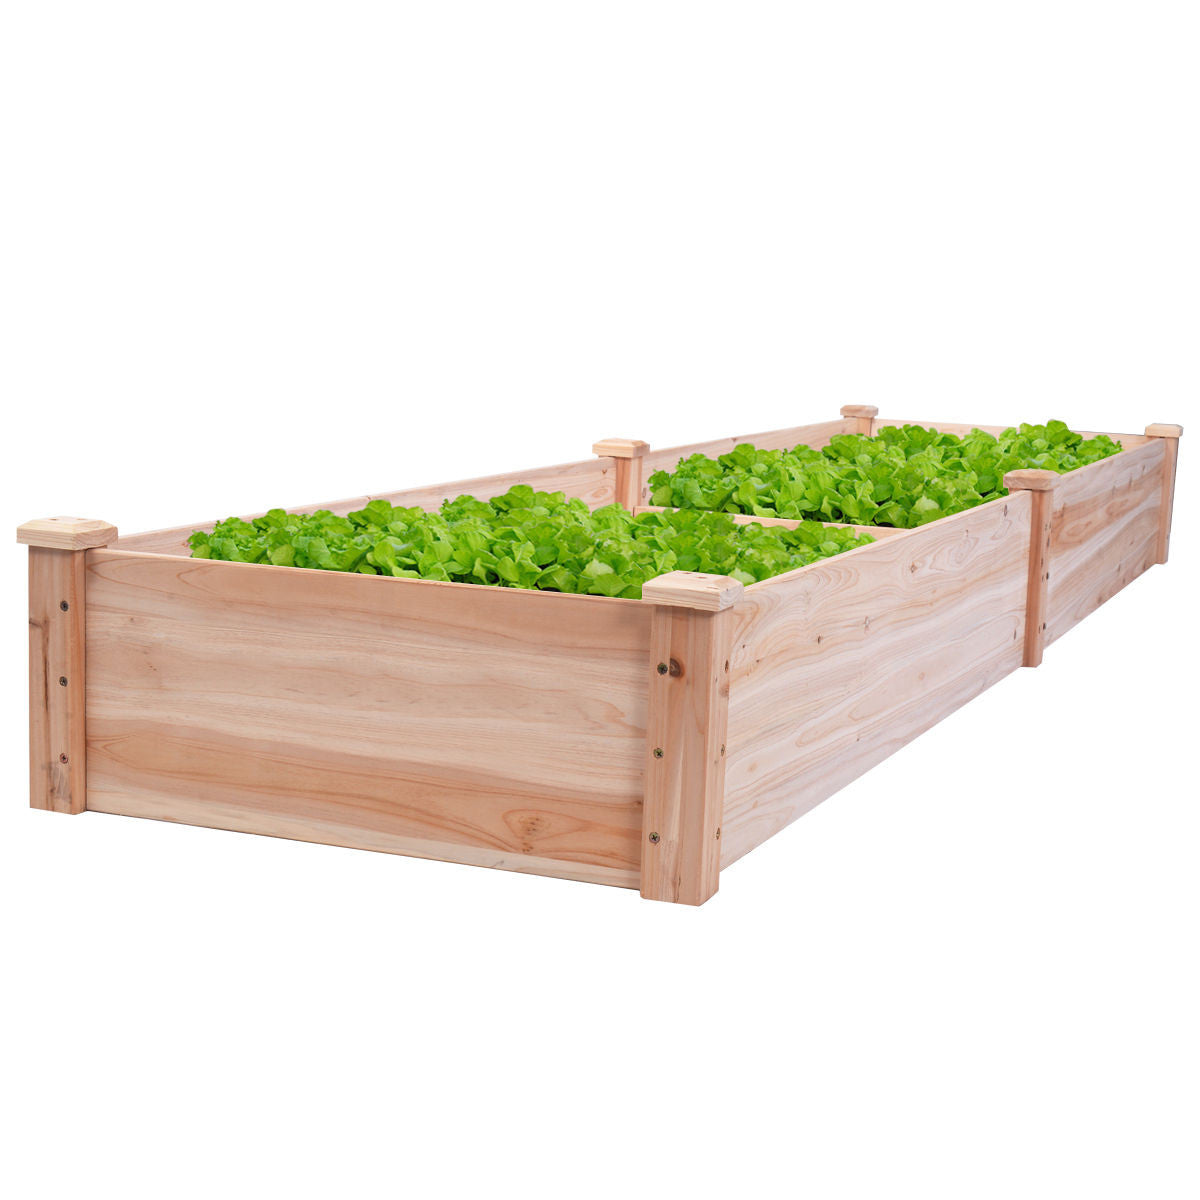 Wooden Vegetable Raised Garden Bed